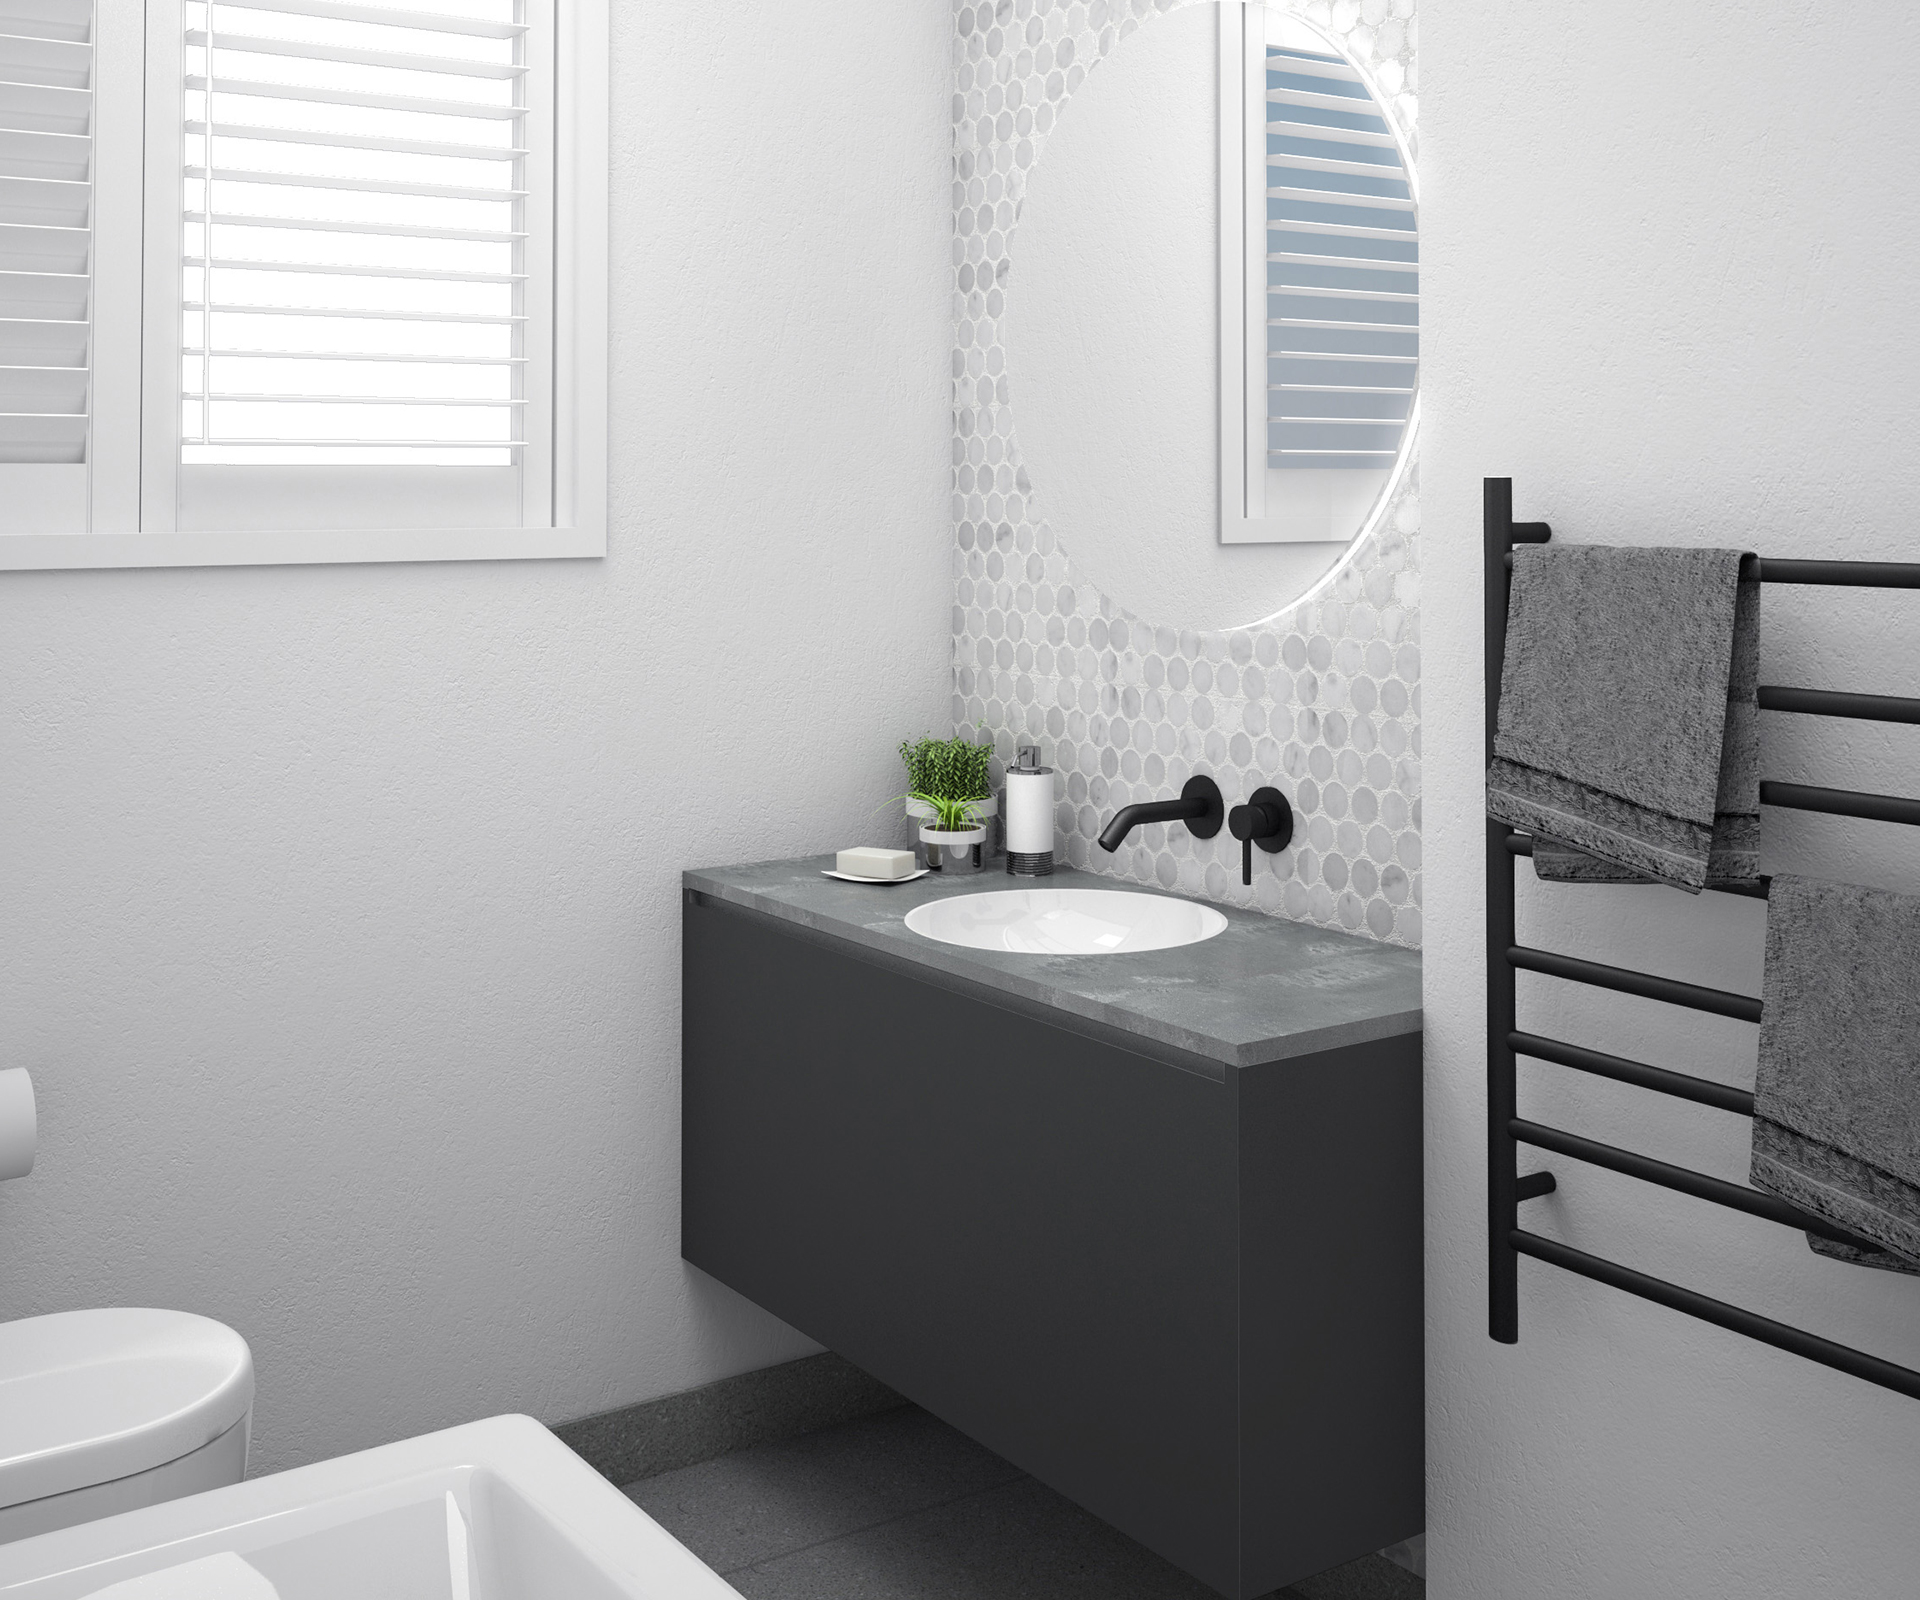 4 Ways To Redesign A Small Family Bathroom With A 28 000 Budget